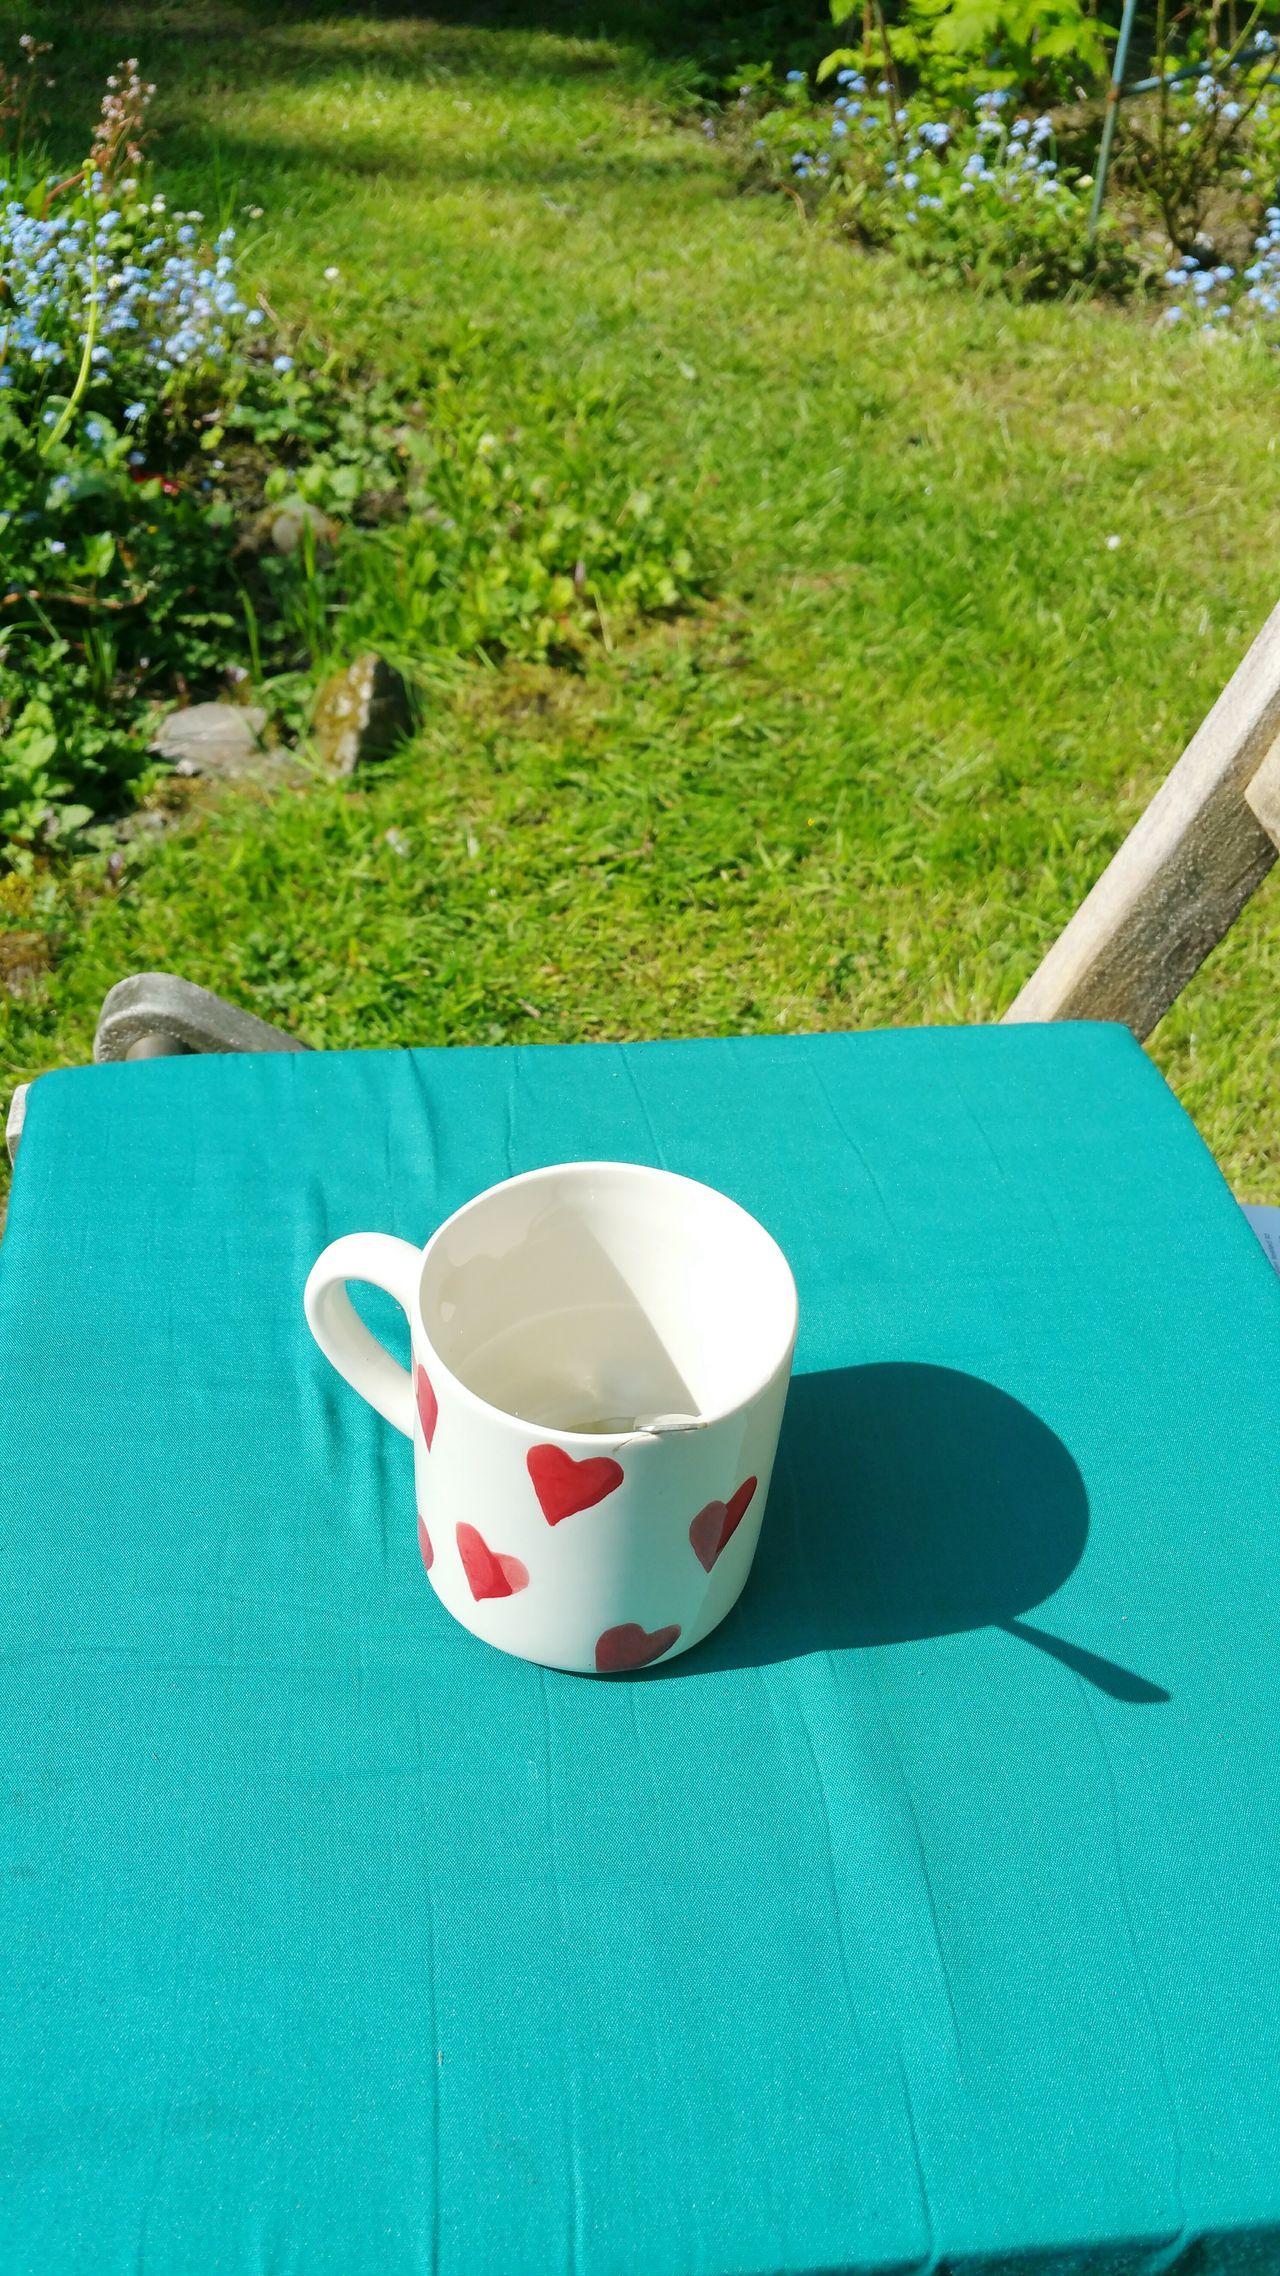 A cup on a chair in the garden High Angle View Blue Grass No People Outdoors Close-up Day Pillow Cushion Forget Me Not Garden Hearts Cup Mug Love Coffee Tea Romantic Sunshine Wales Green Color Cosy Comfy  Summer Spring